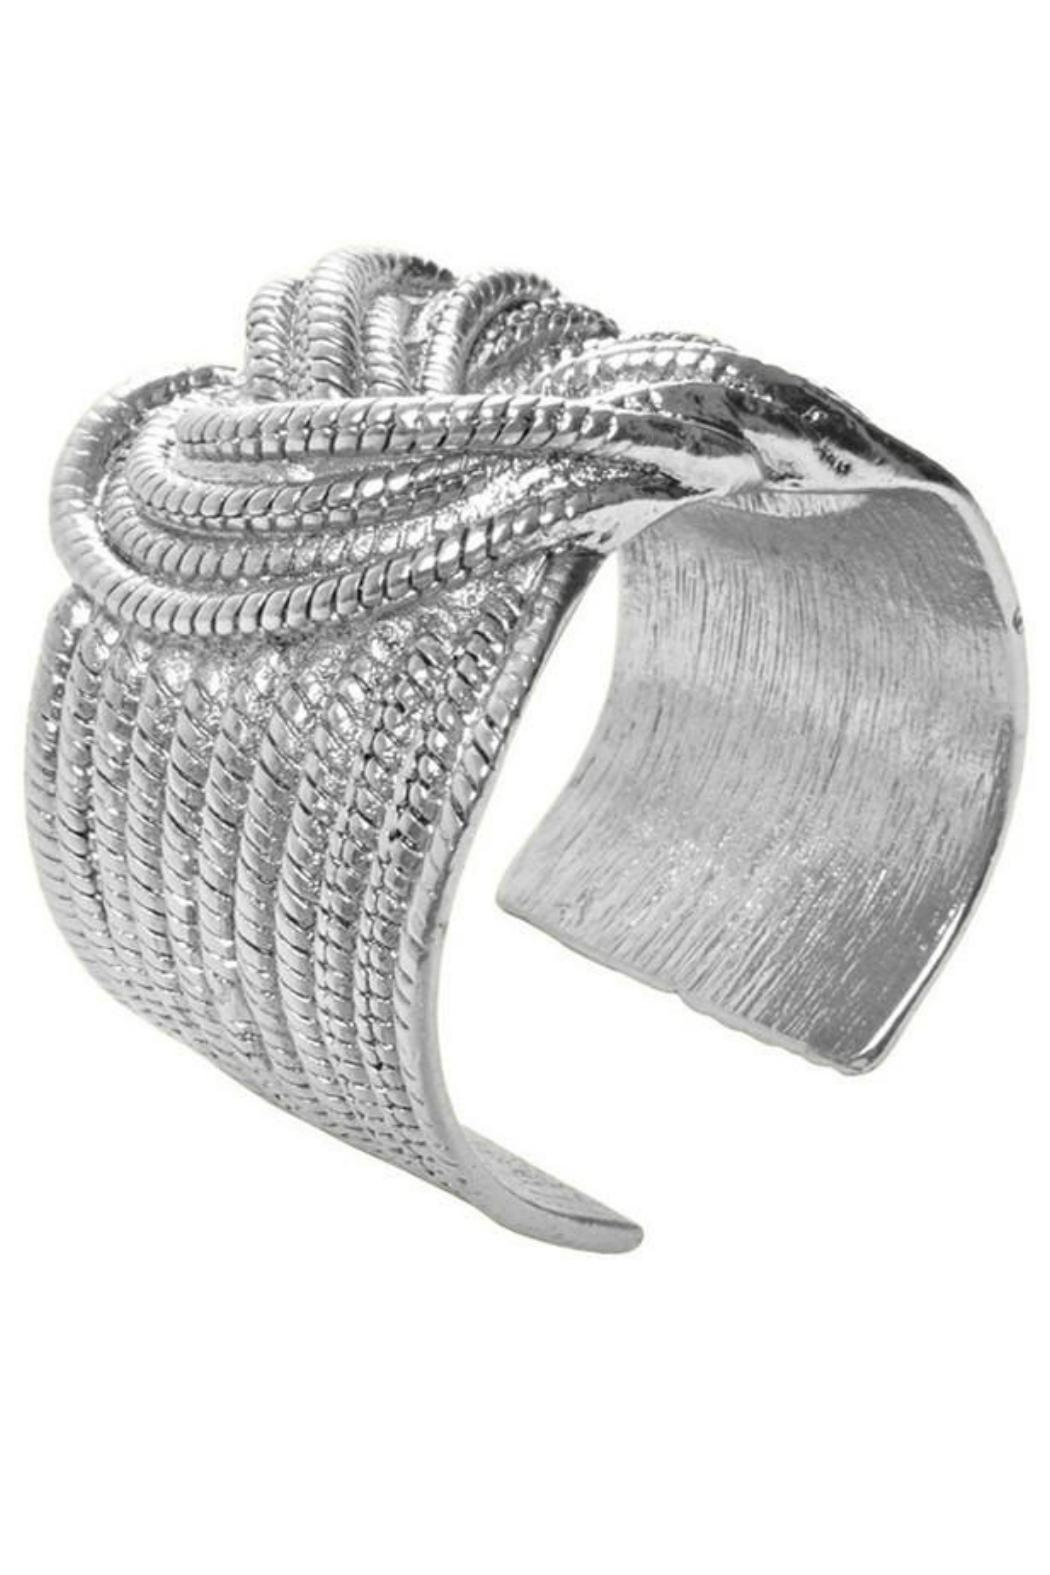 Karine Sultan Paris Boating Knot Cuff - Front Cropped Image